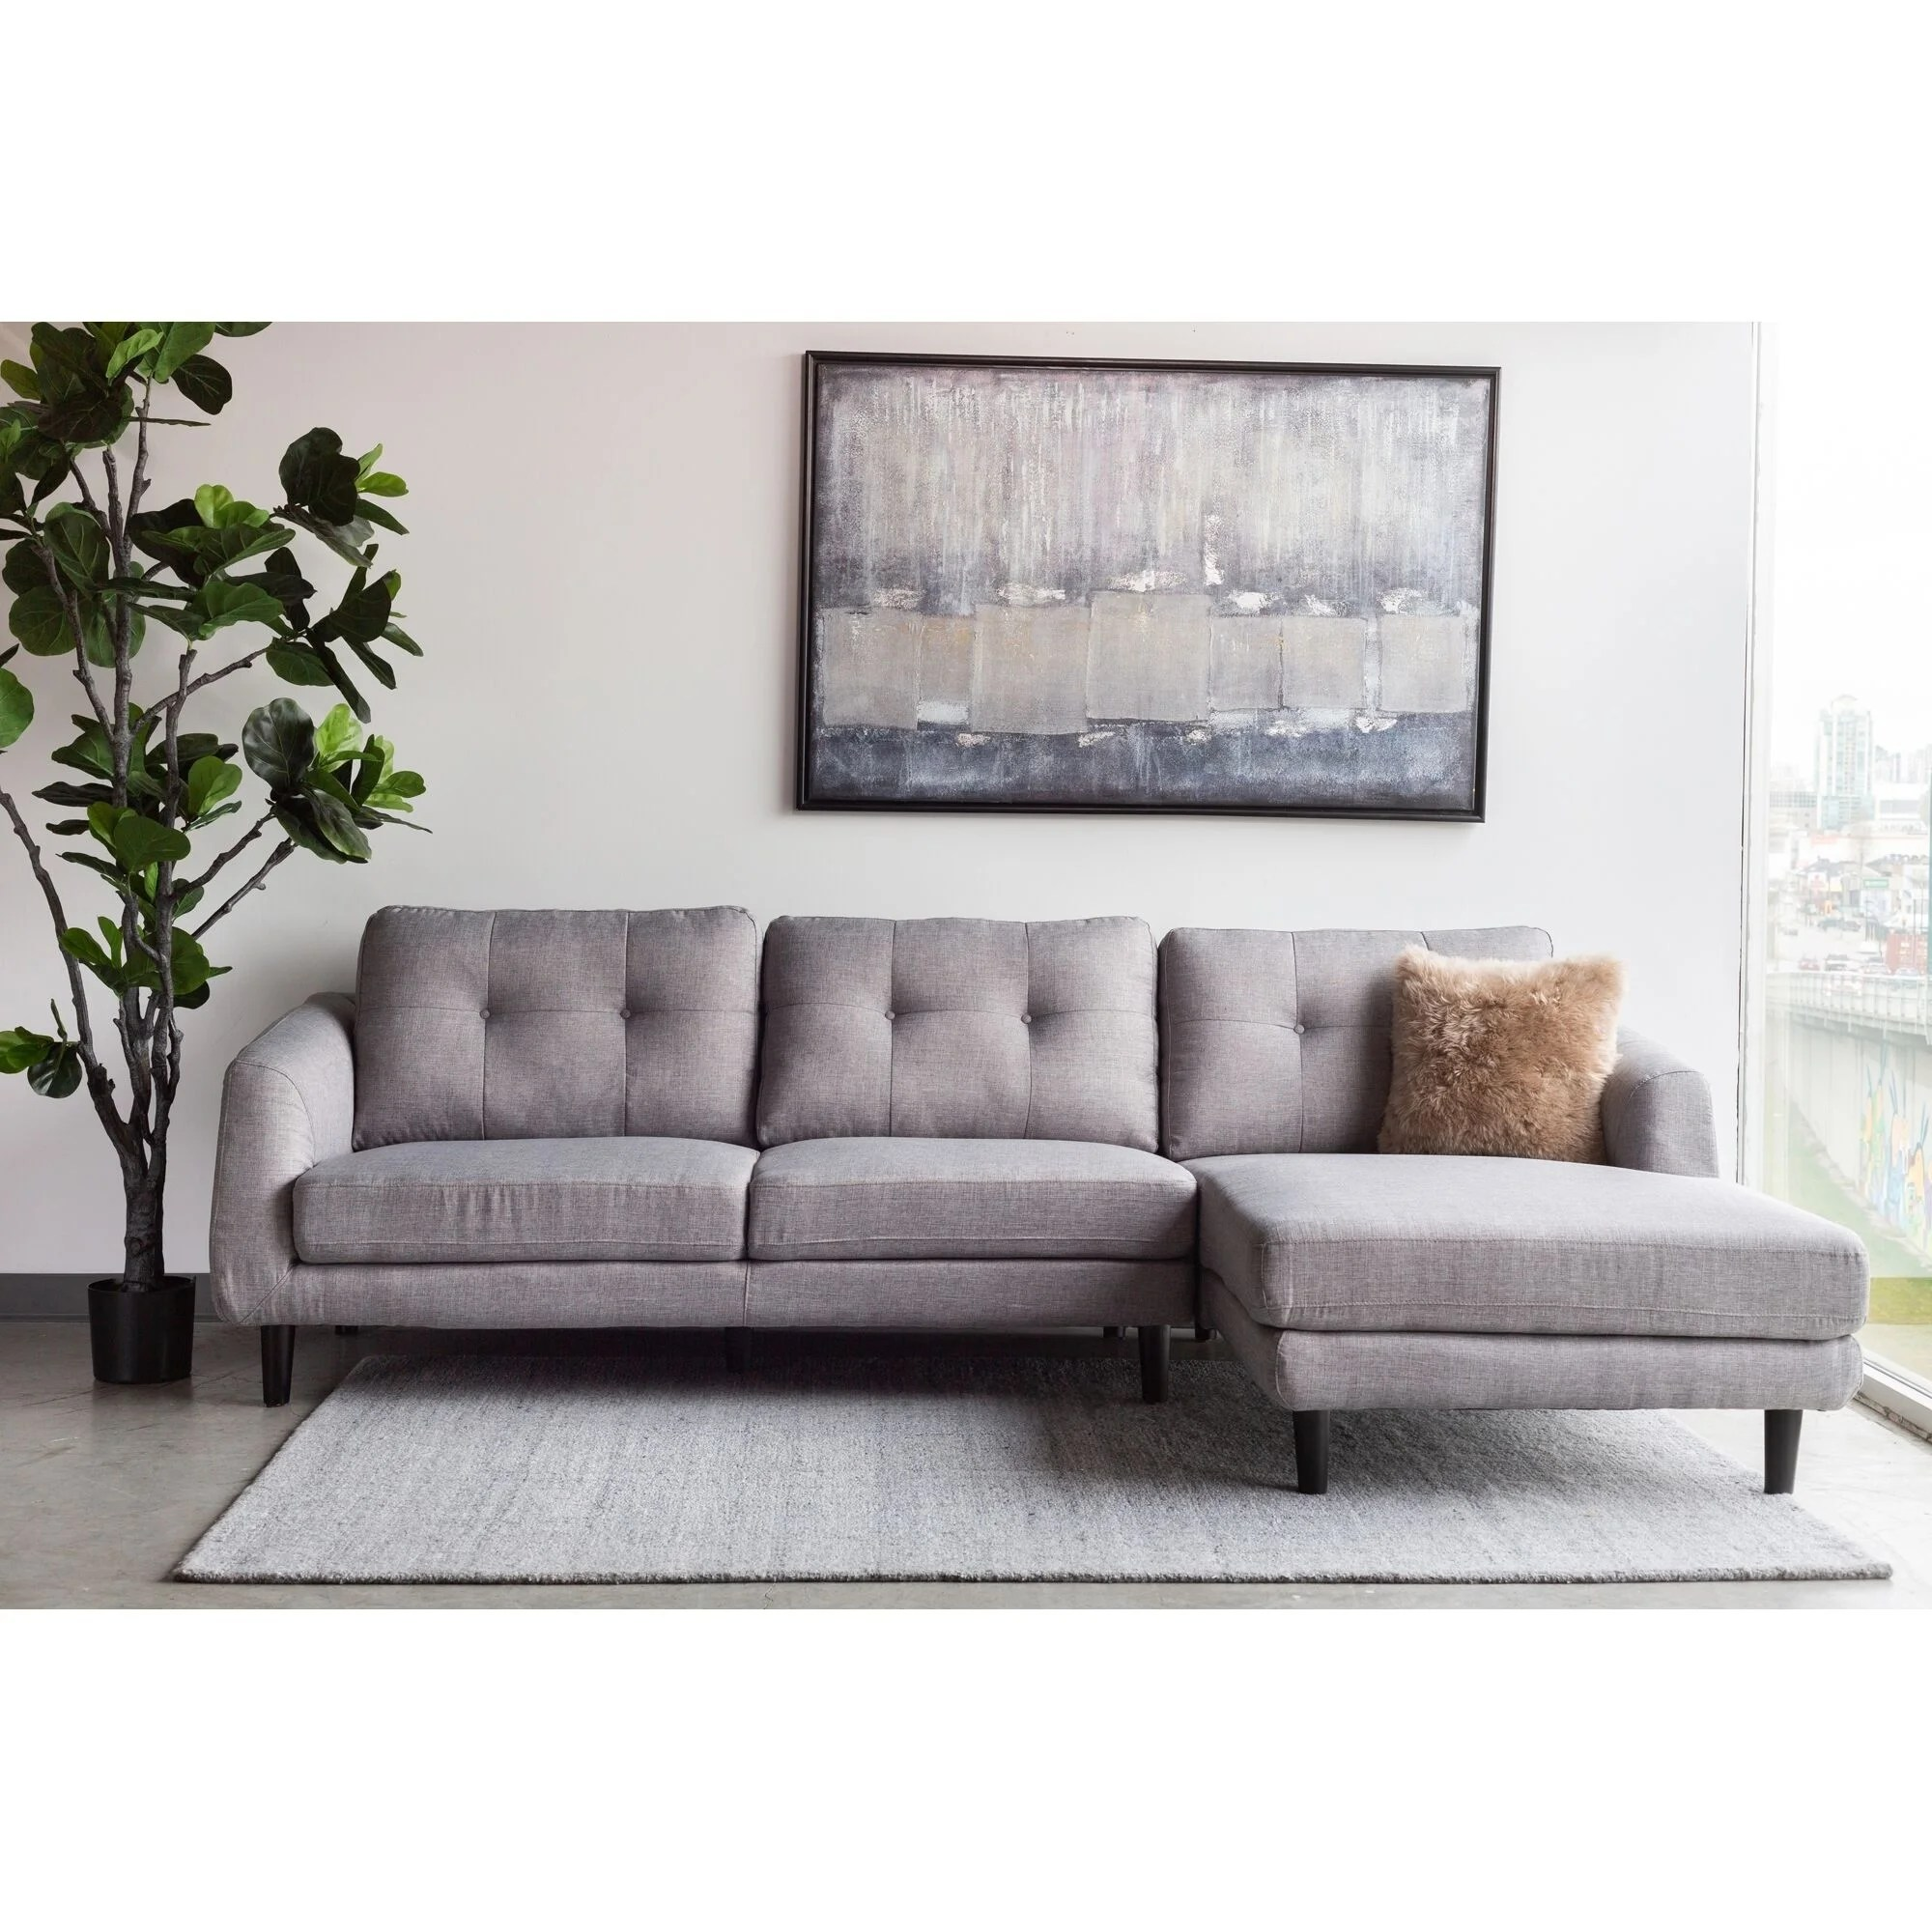 Aurelle Home Ragnar Mid Century Modern Sectional Sofa On Sale Overstock 18706935 Right Facing